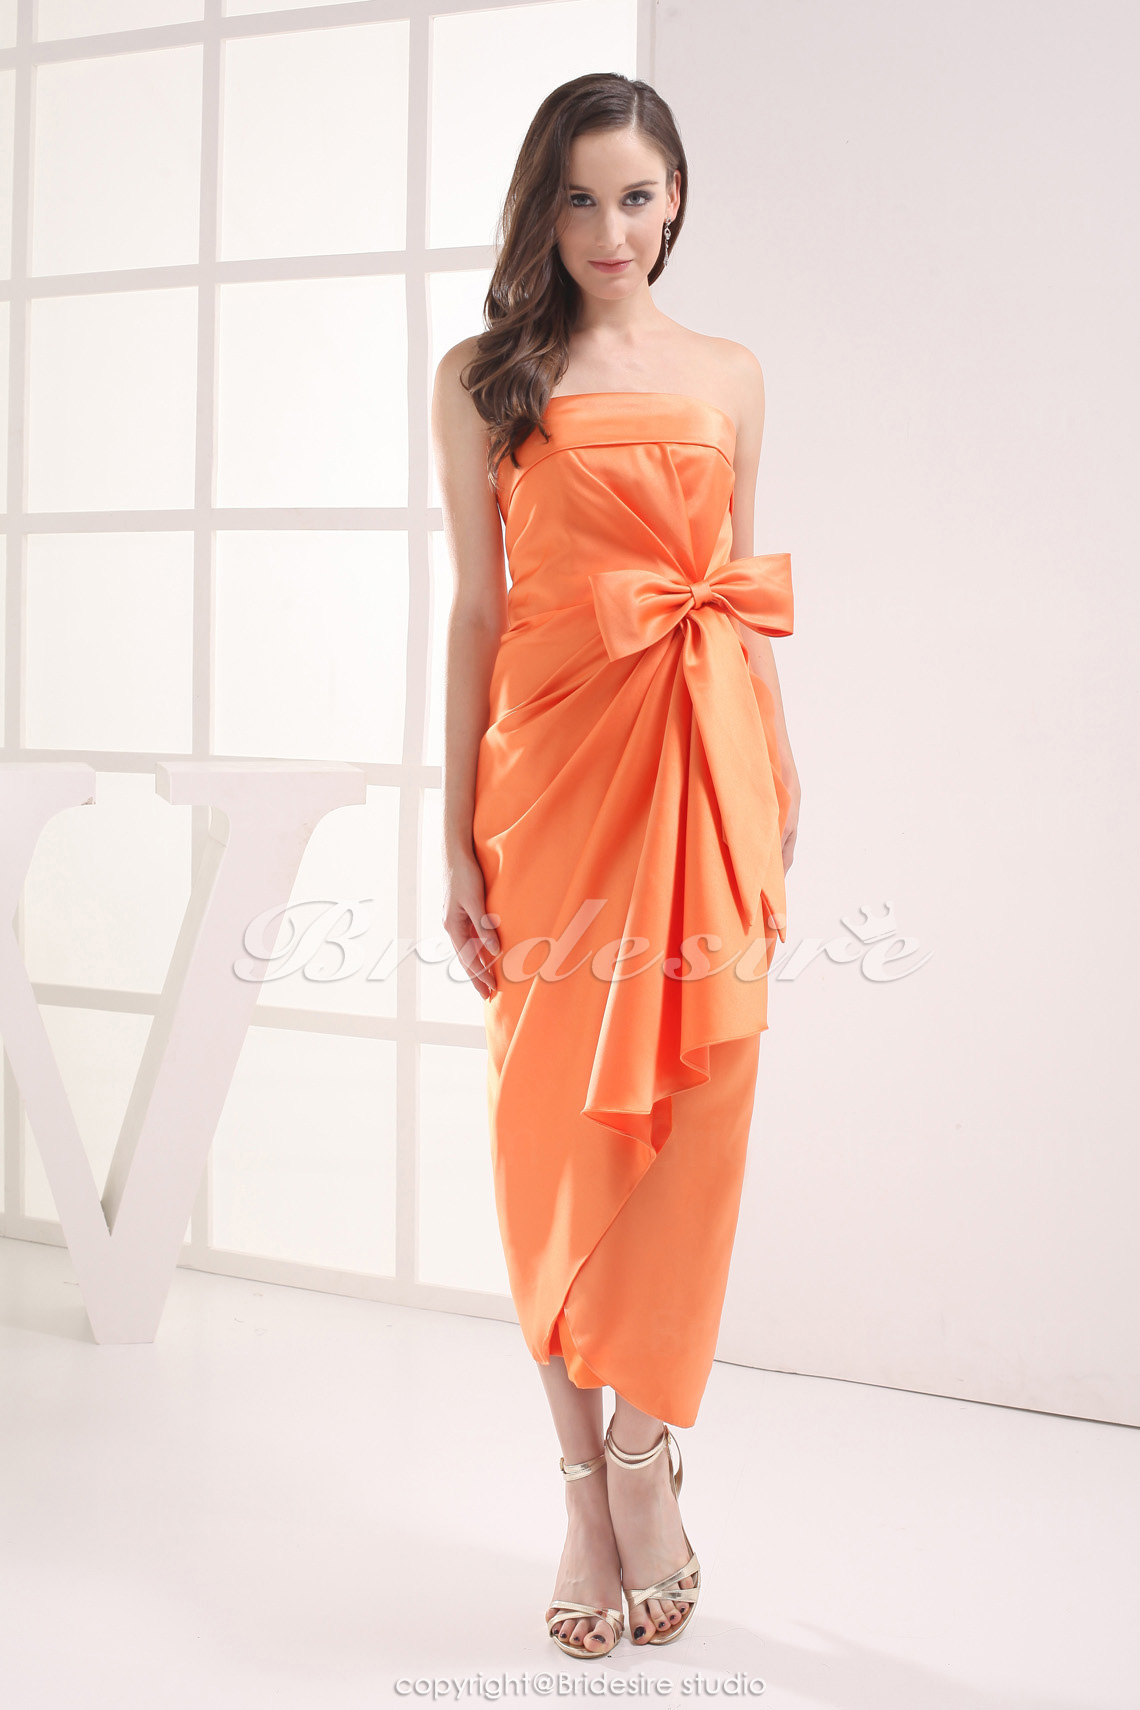 Sheath/Column Strapless Tea-length Sleeveless Stretch Satin Dress